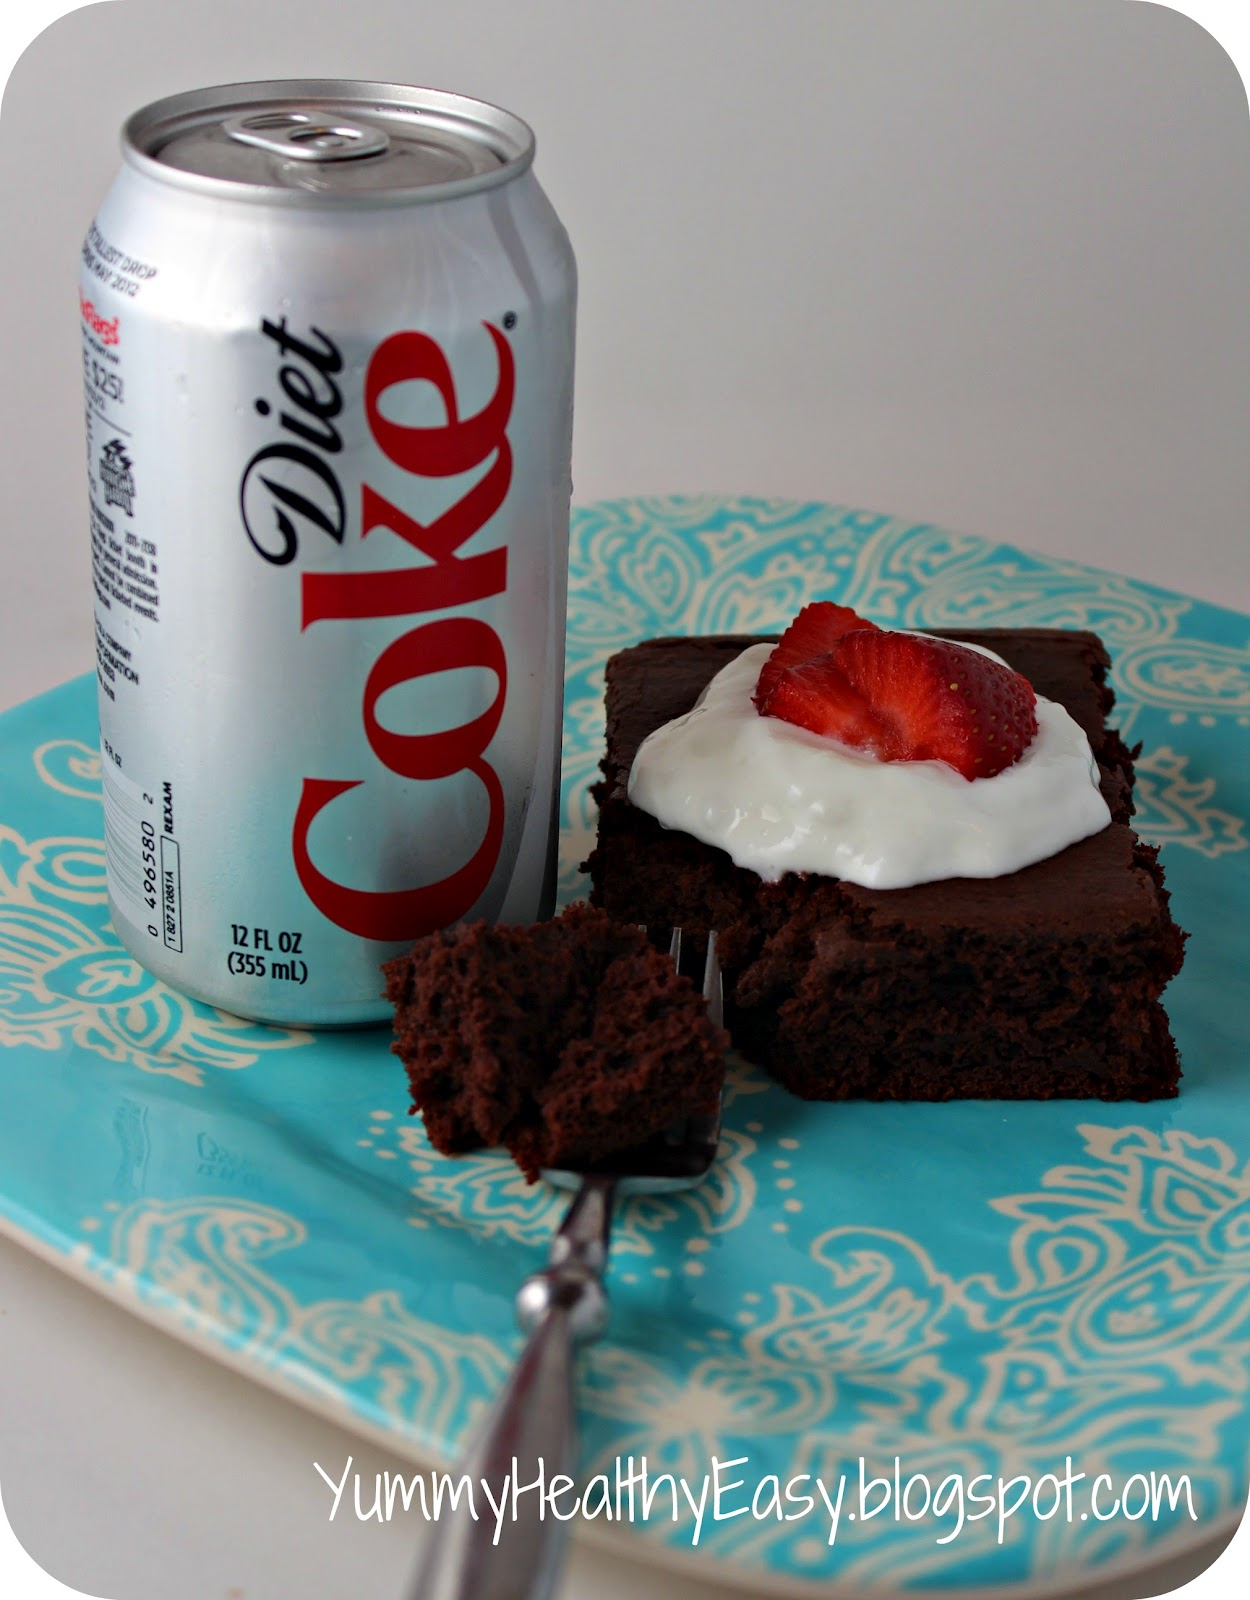 Cake Mix With Soda Instead Of Eggs